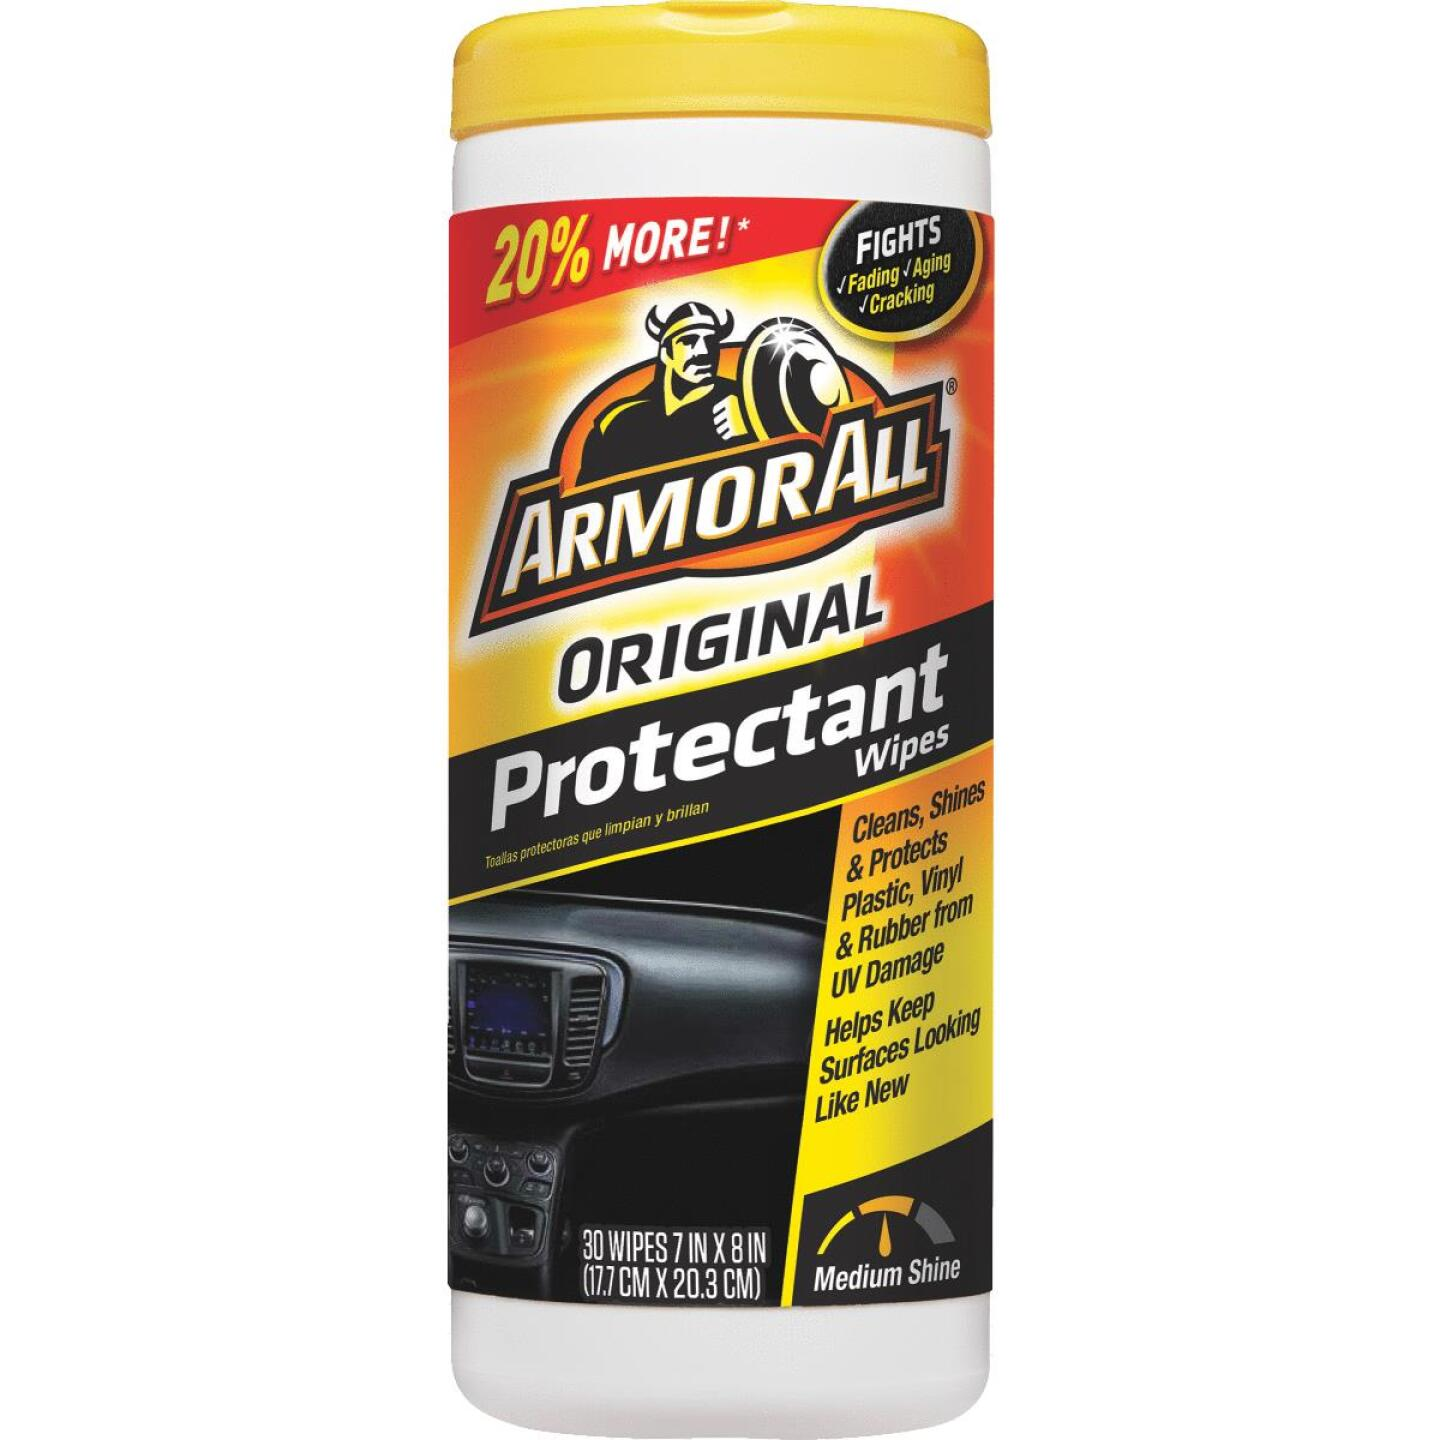 Armor All Original Protectant Wipe (30-Count) Image 1